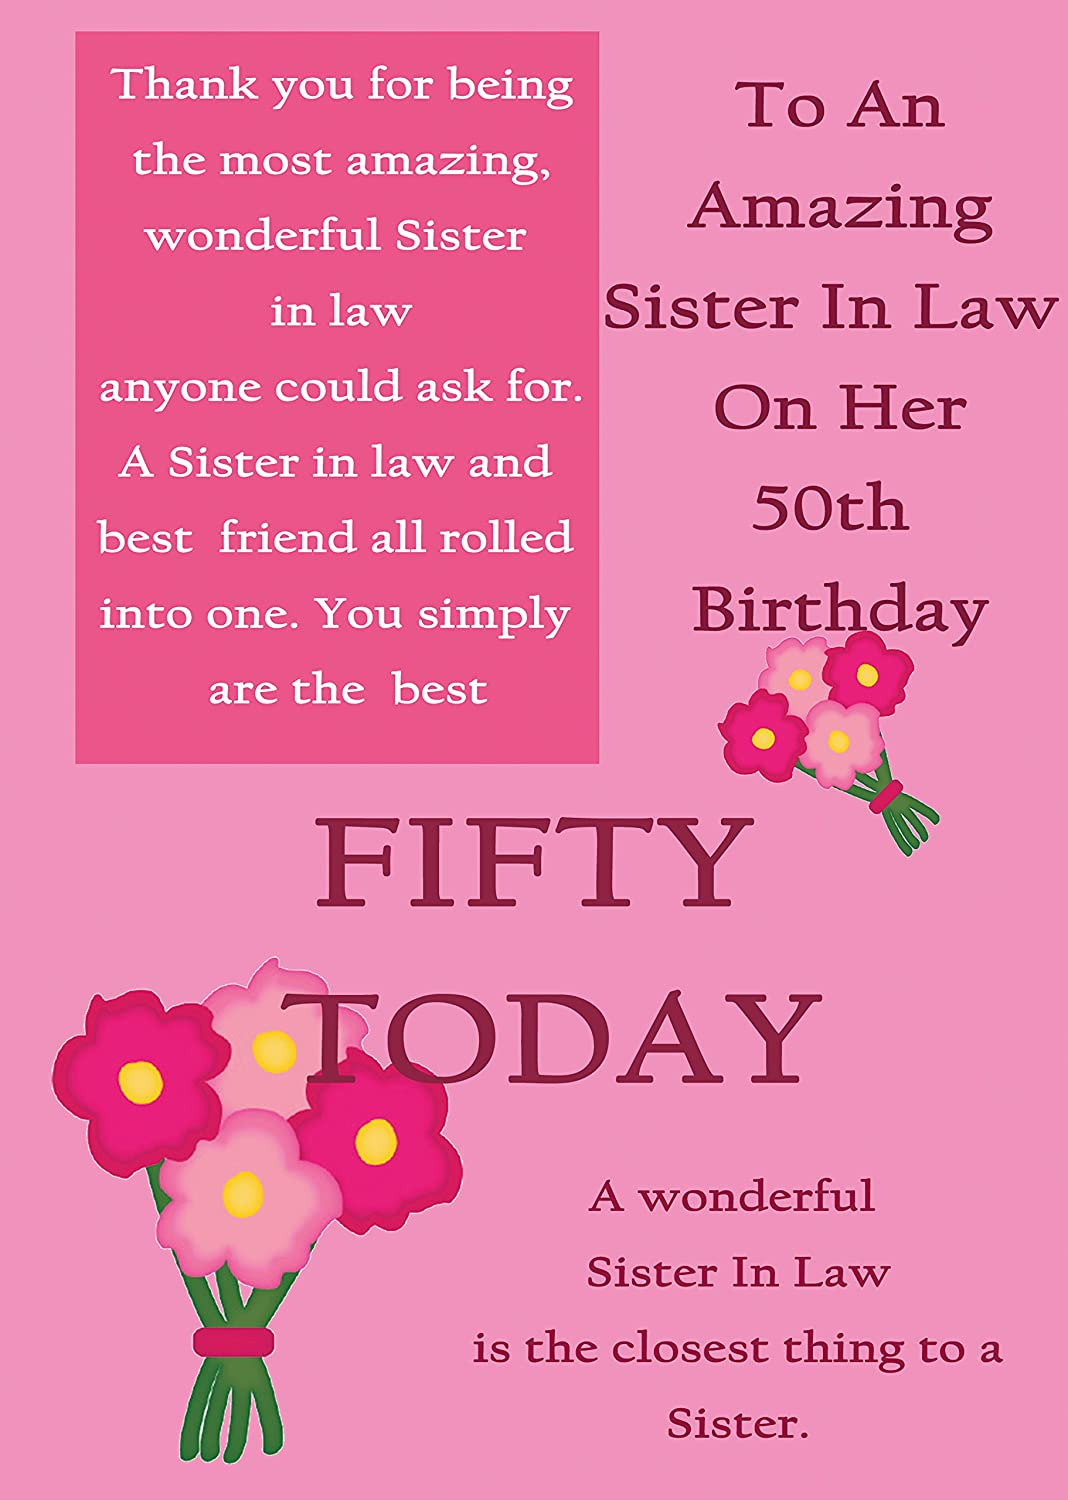 For a Special Daughter in Law on your 50th Birthday card Amazon – Birthday Greetings for 50th Birthday